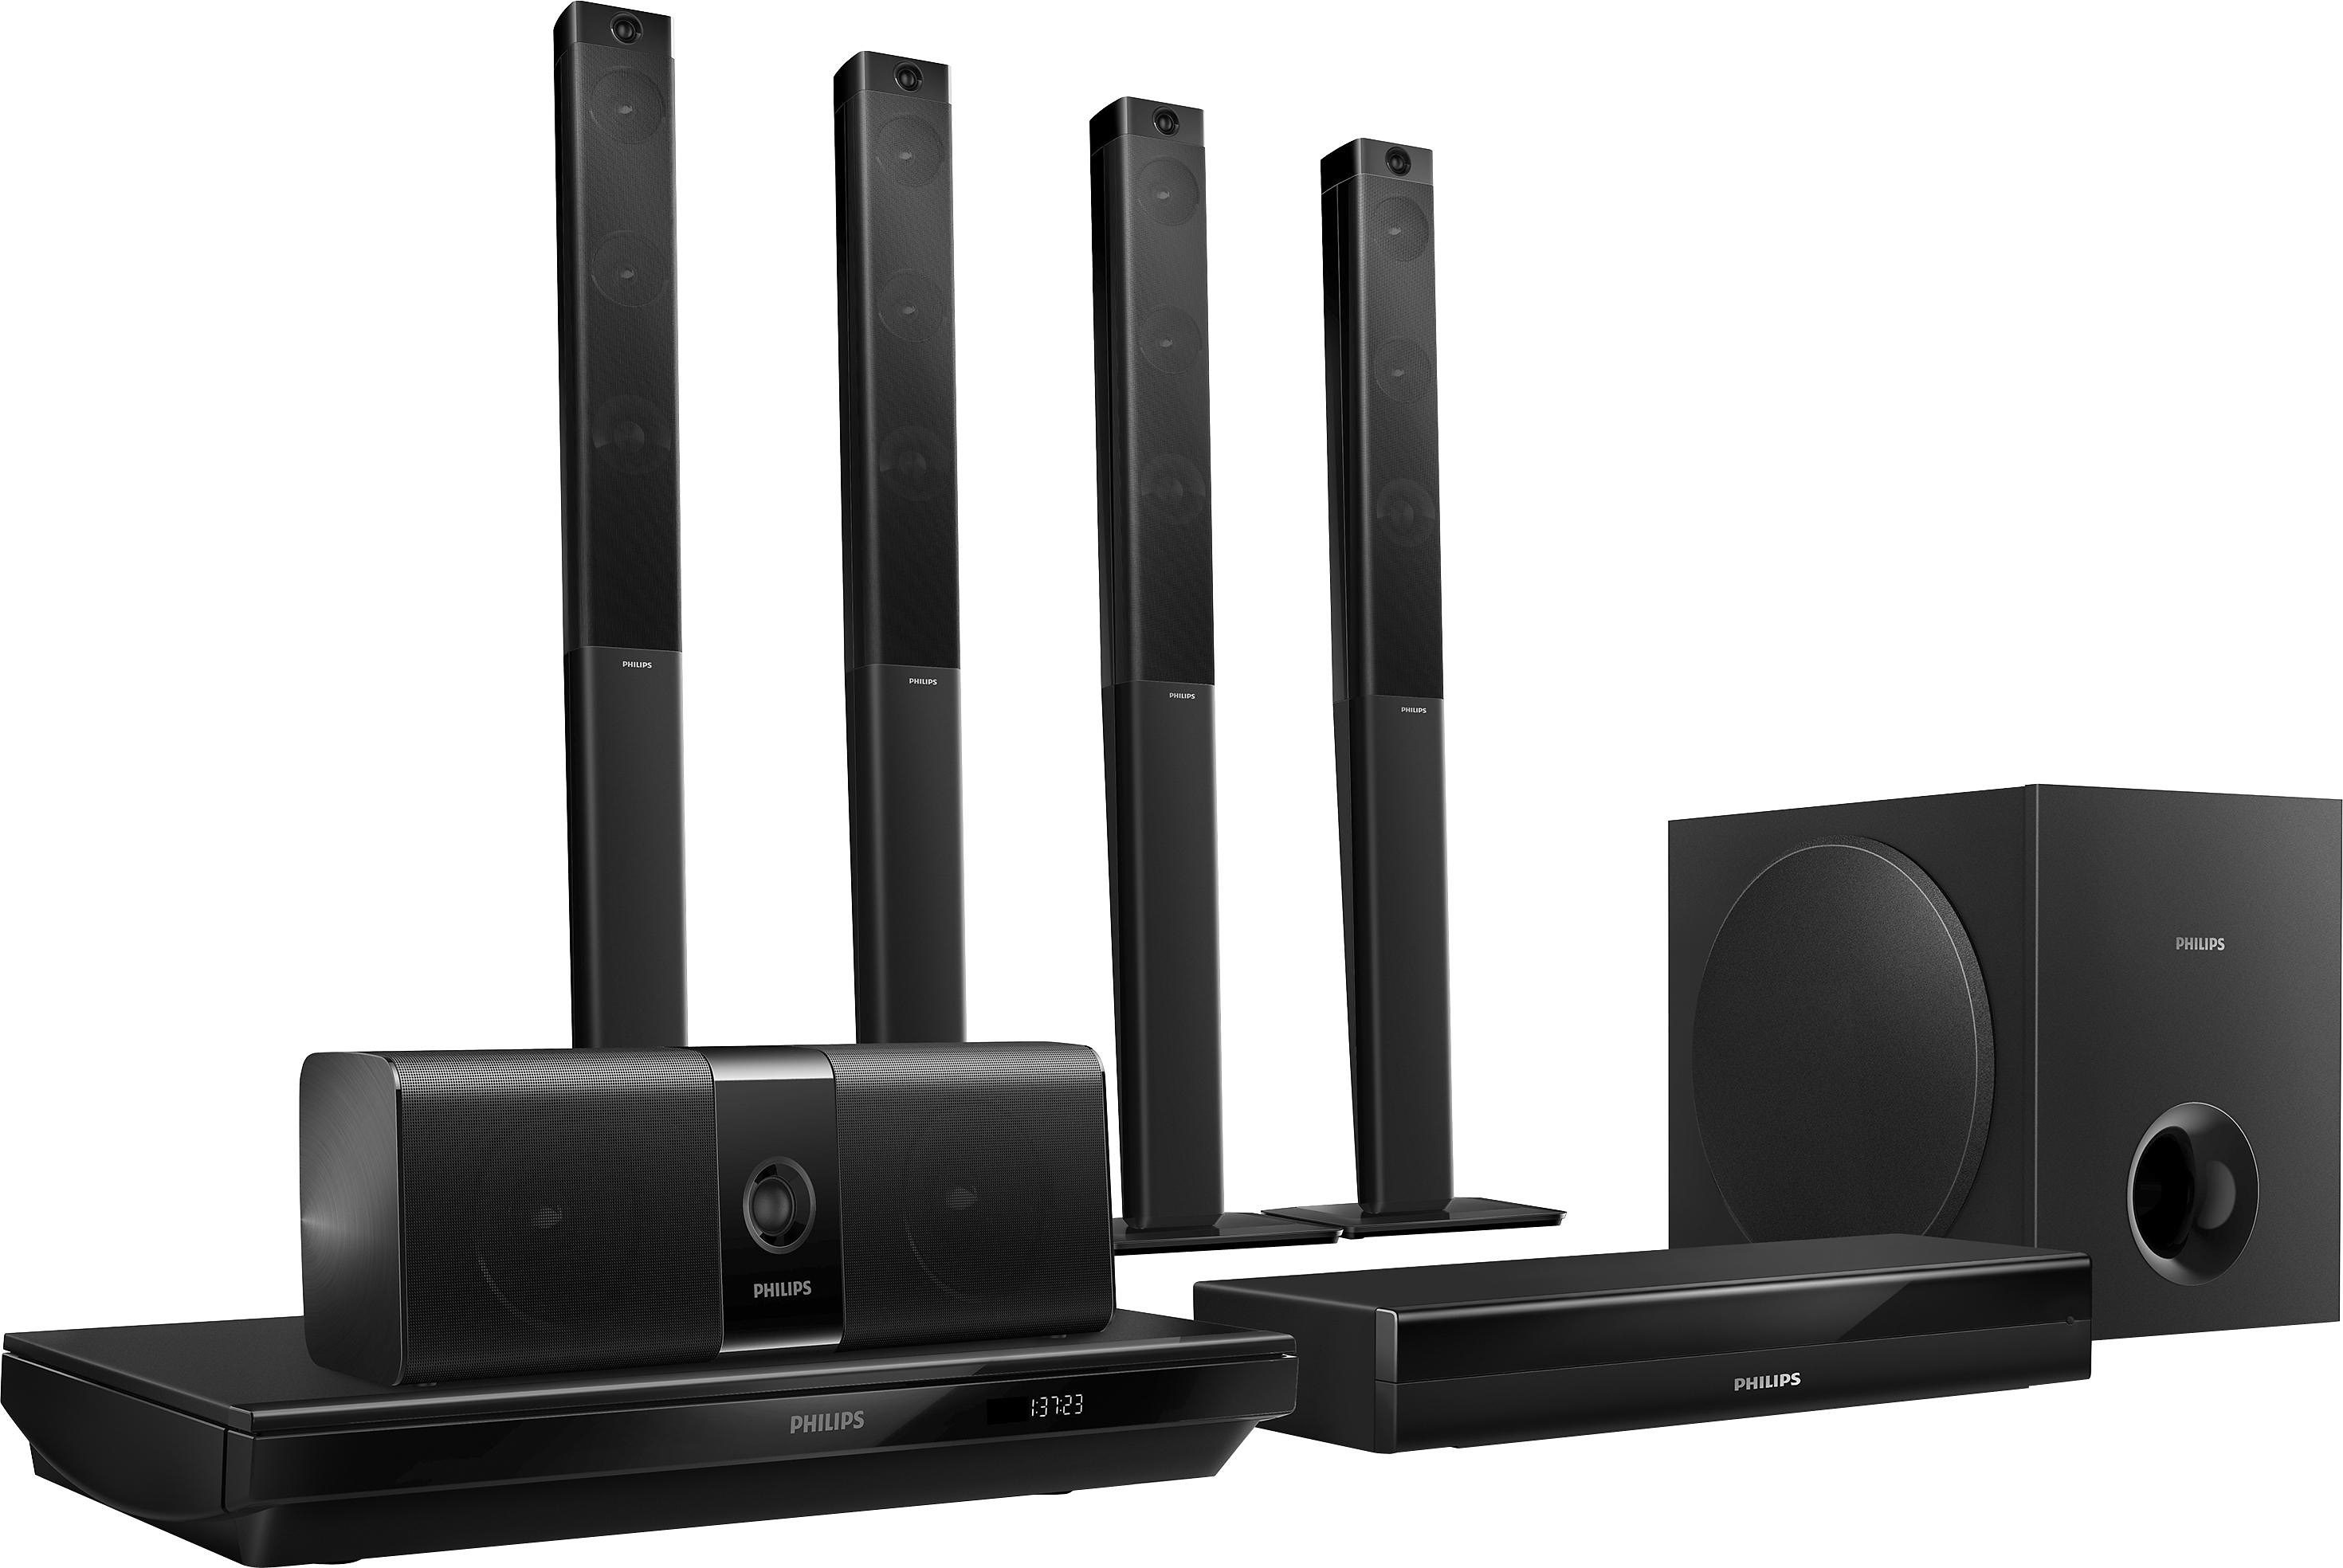 Philips HTB5580G/12 Heimkinosystem, Blu-ray-Player, 1.000 W, 3D-fähig, WLAN, NFC, Bluetooth